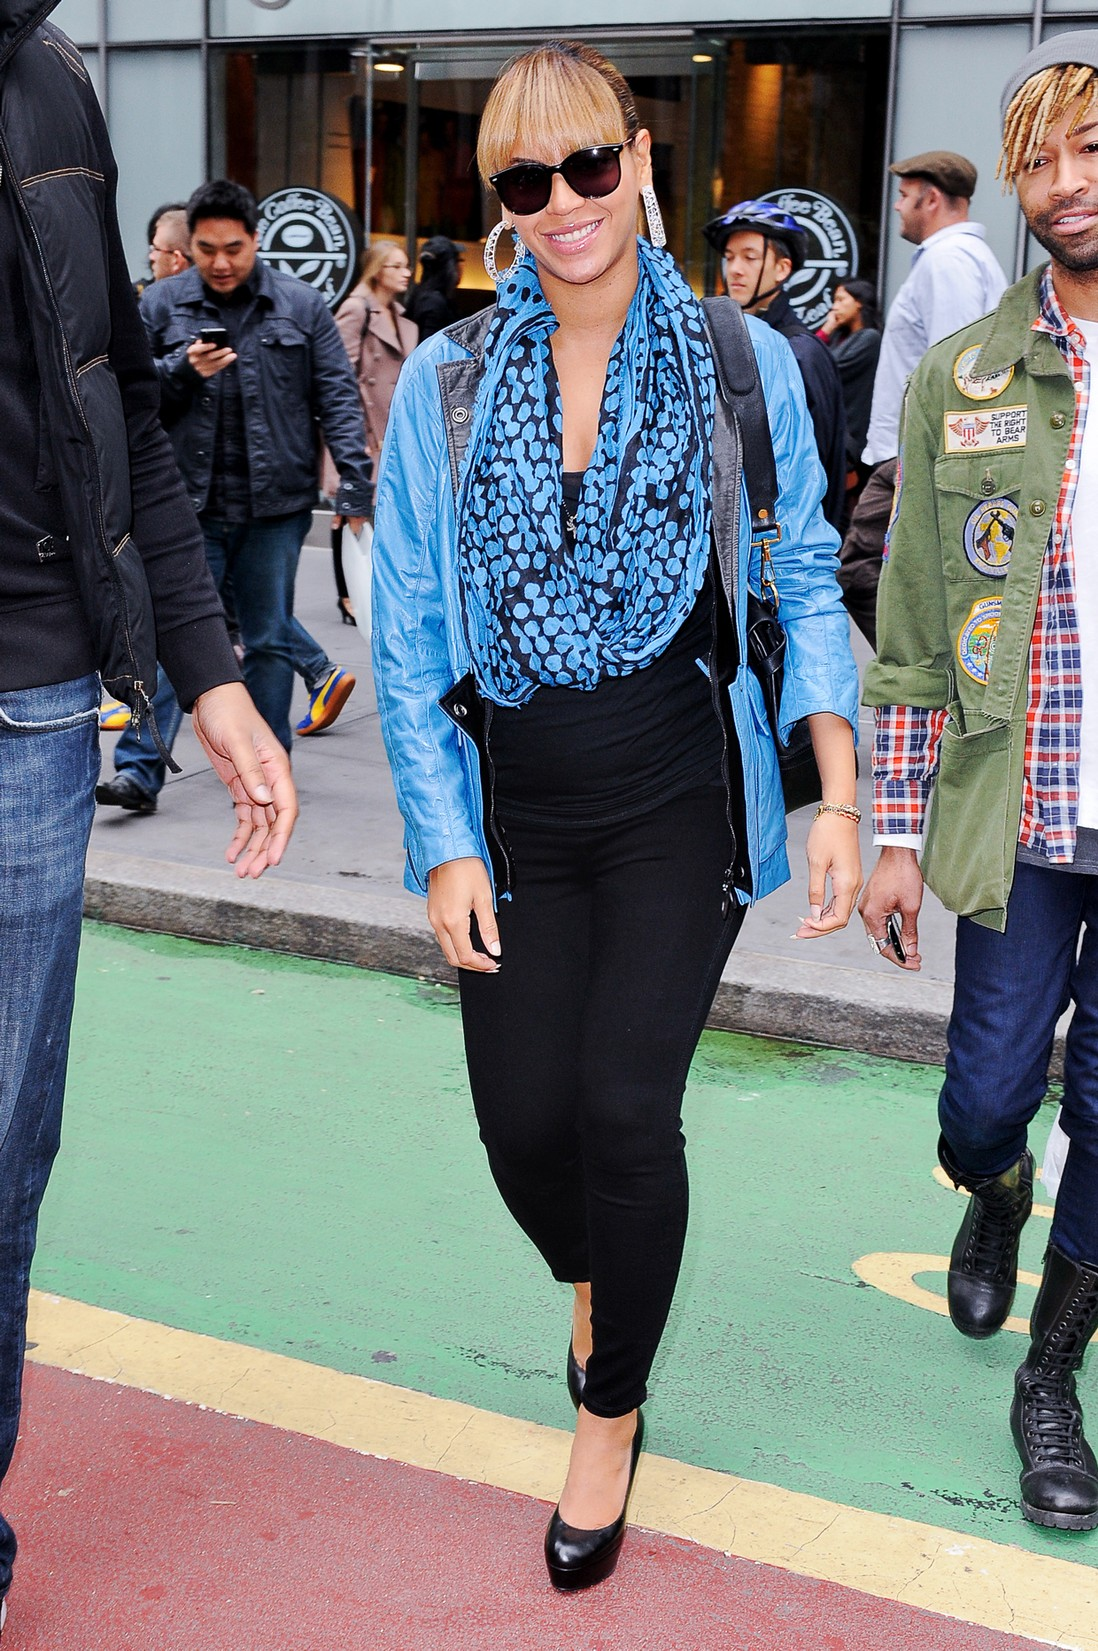 Beyoncé leaves a Midtown Manhattan office building on Oct. 24, 2011 in New York City.